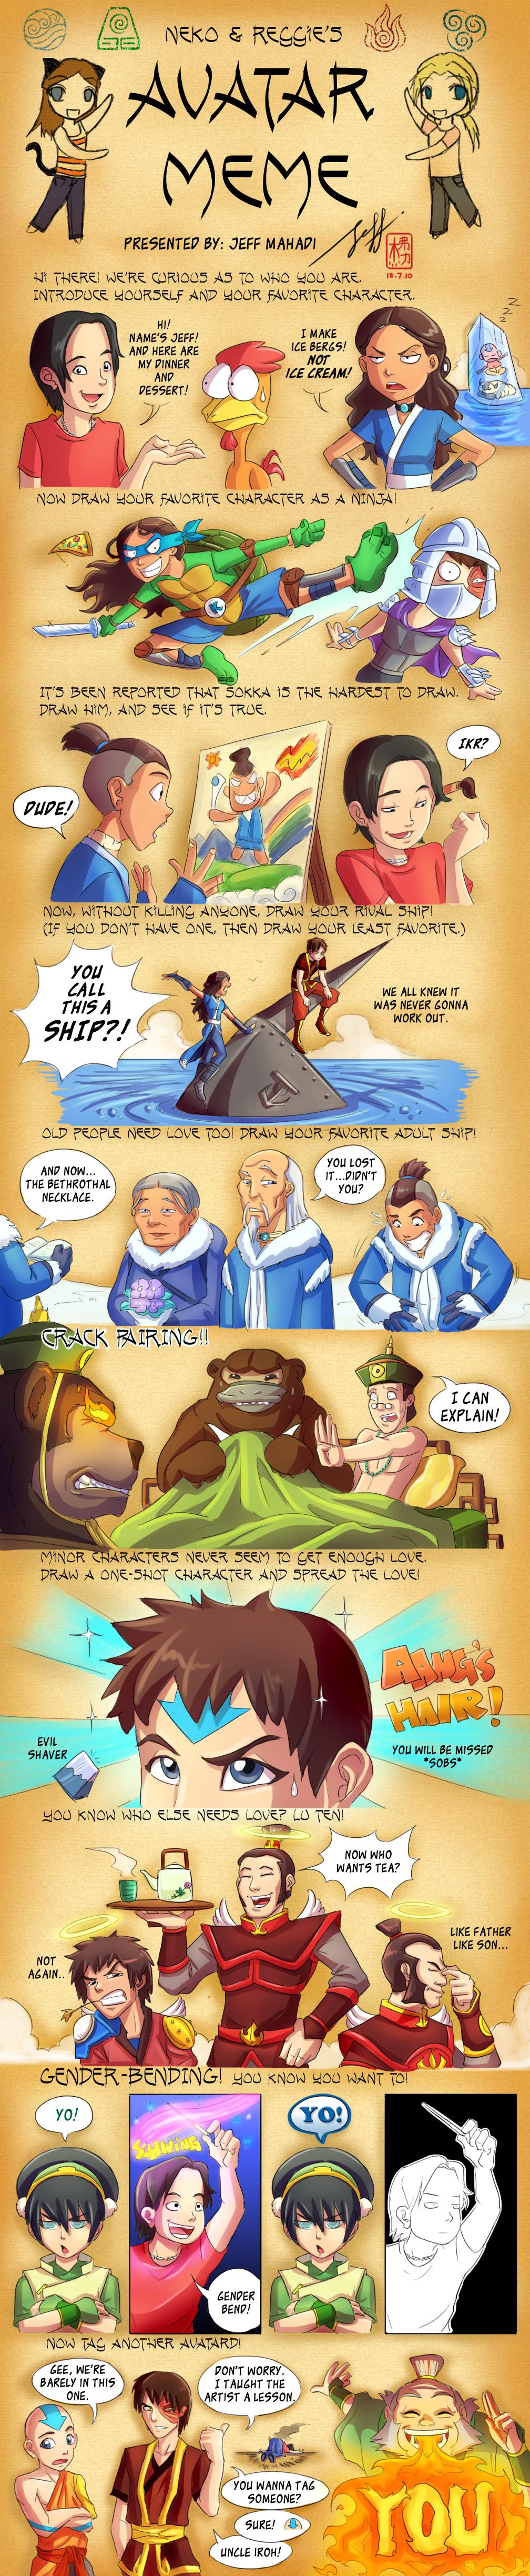 Avatar The Last Airbender Meme by Jeff-Mahadi